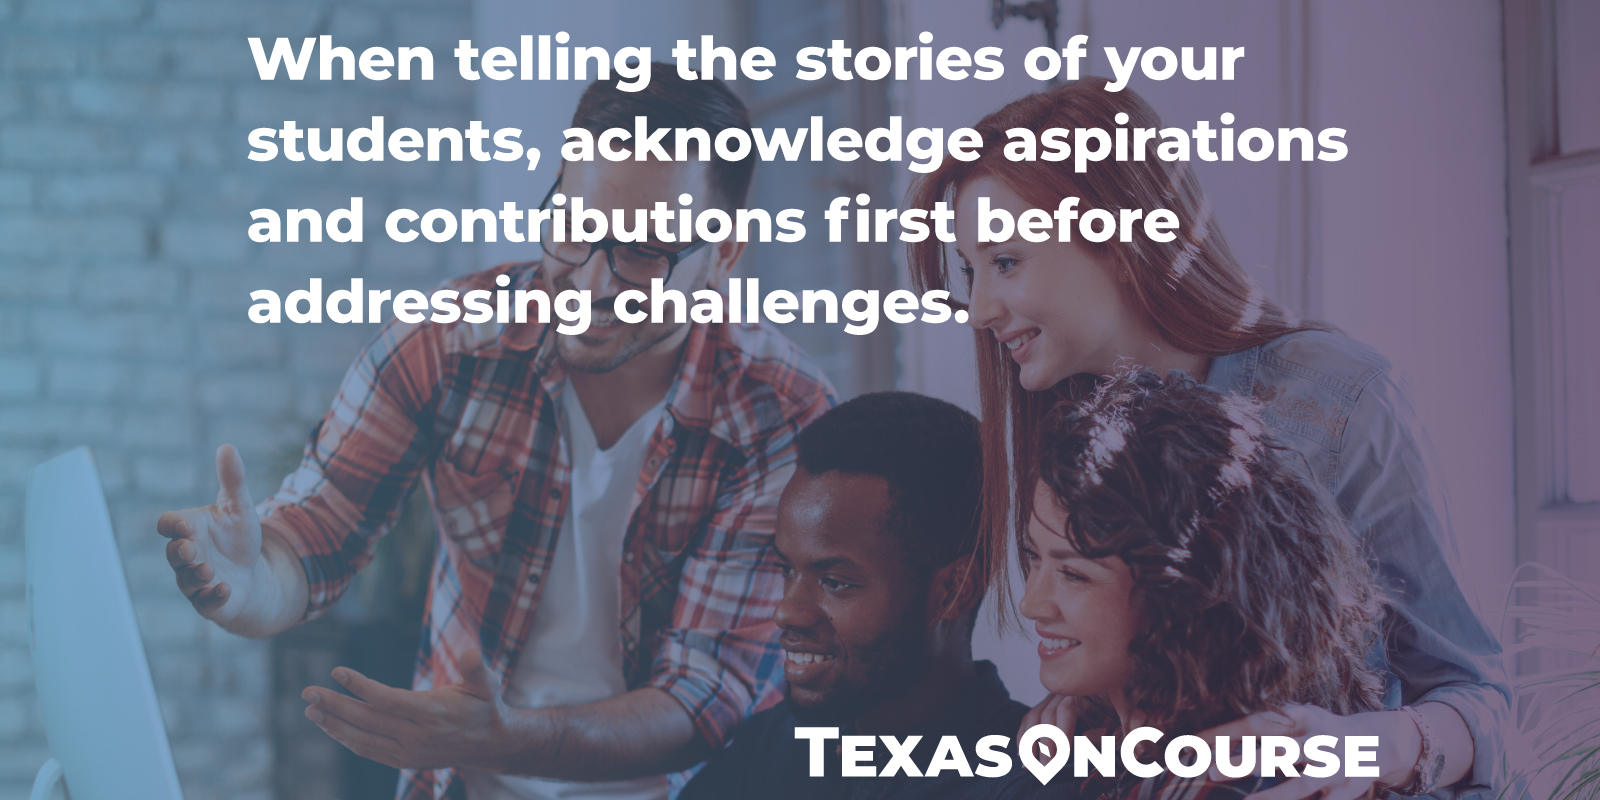 When telling the stories of your students, acknowledge aspirations and contributions first before addressing challenges.